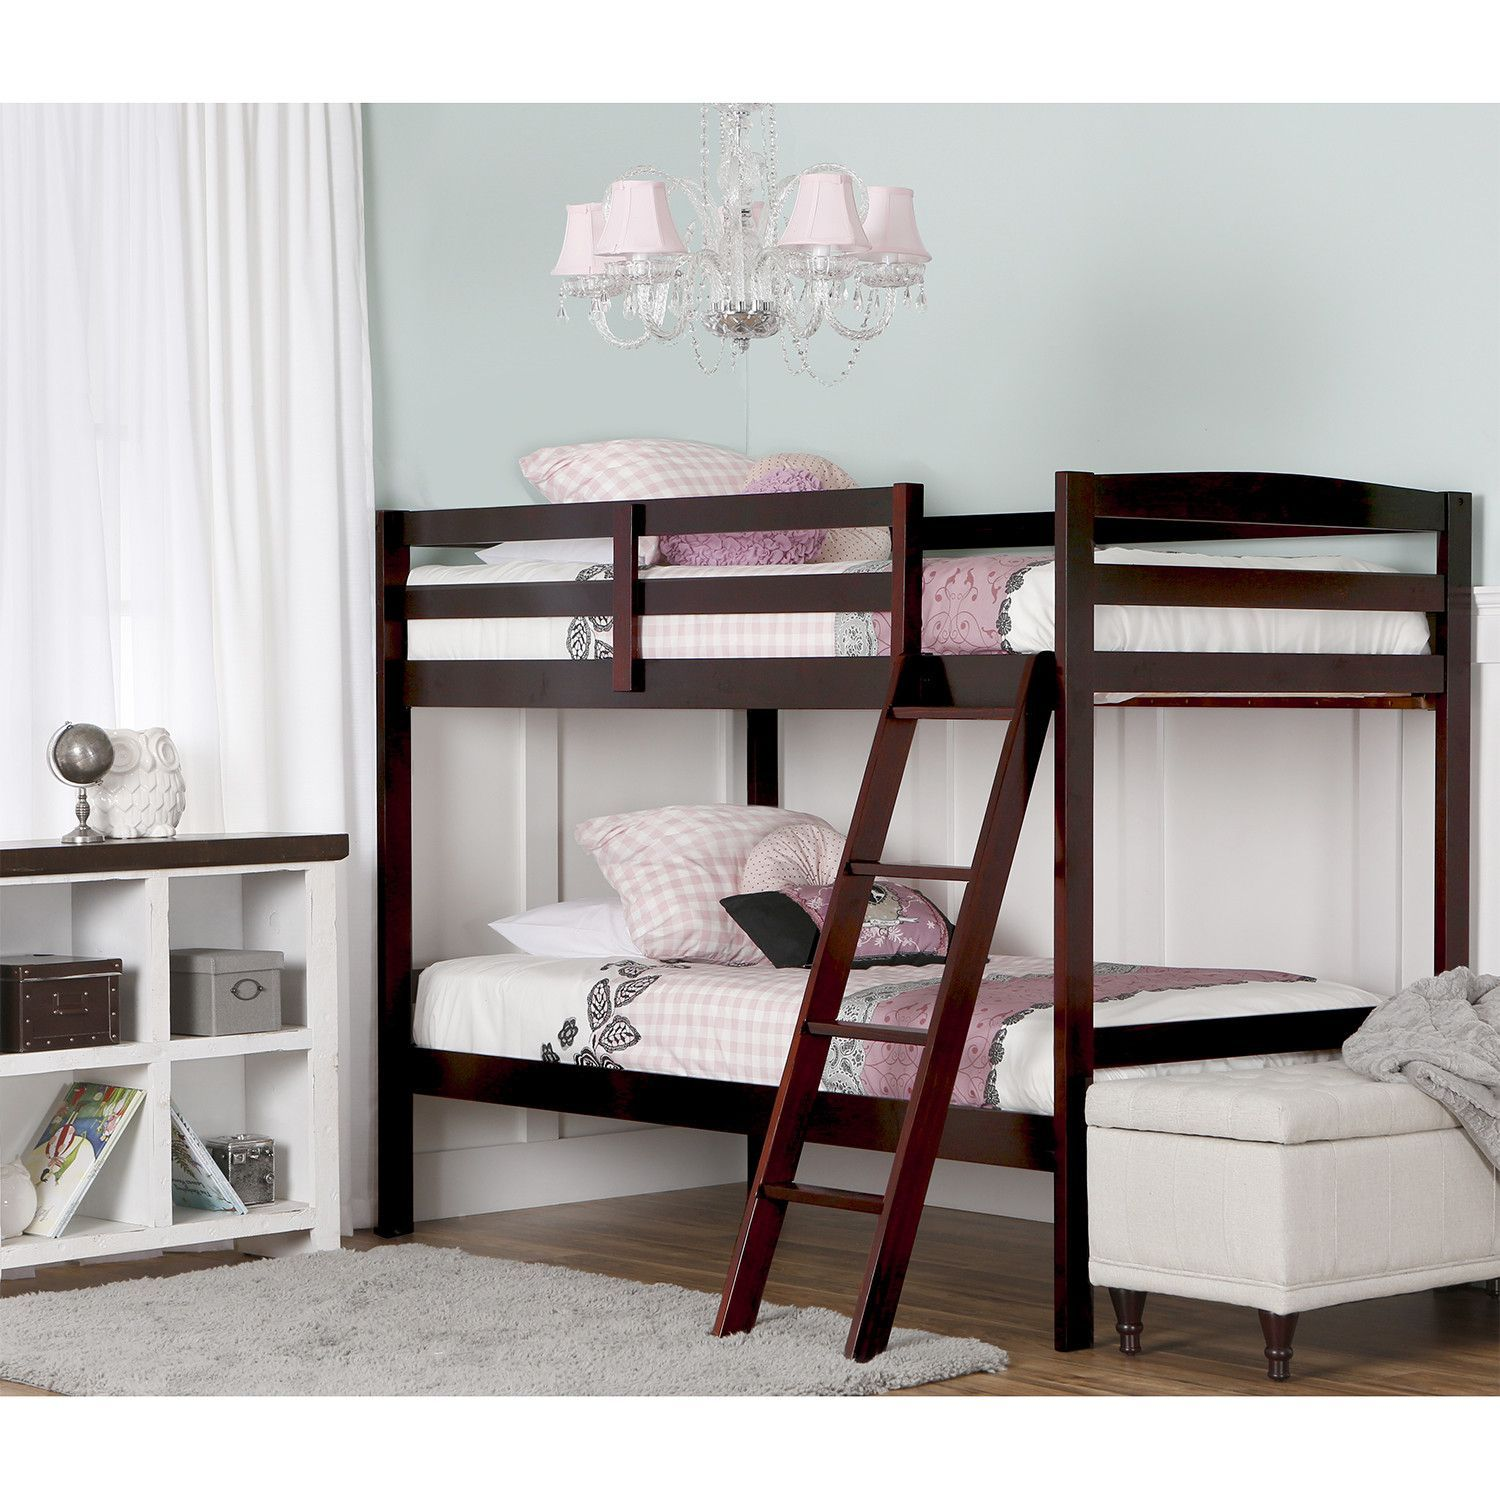 Taylor Twin Bunk Bed (With images) Twin bunk beds, Bunk